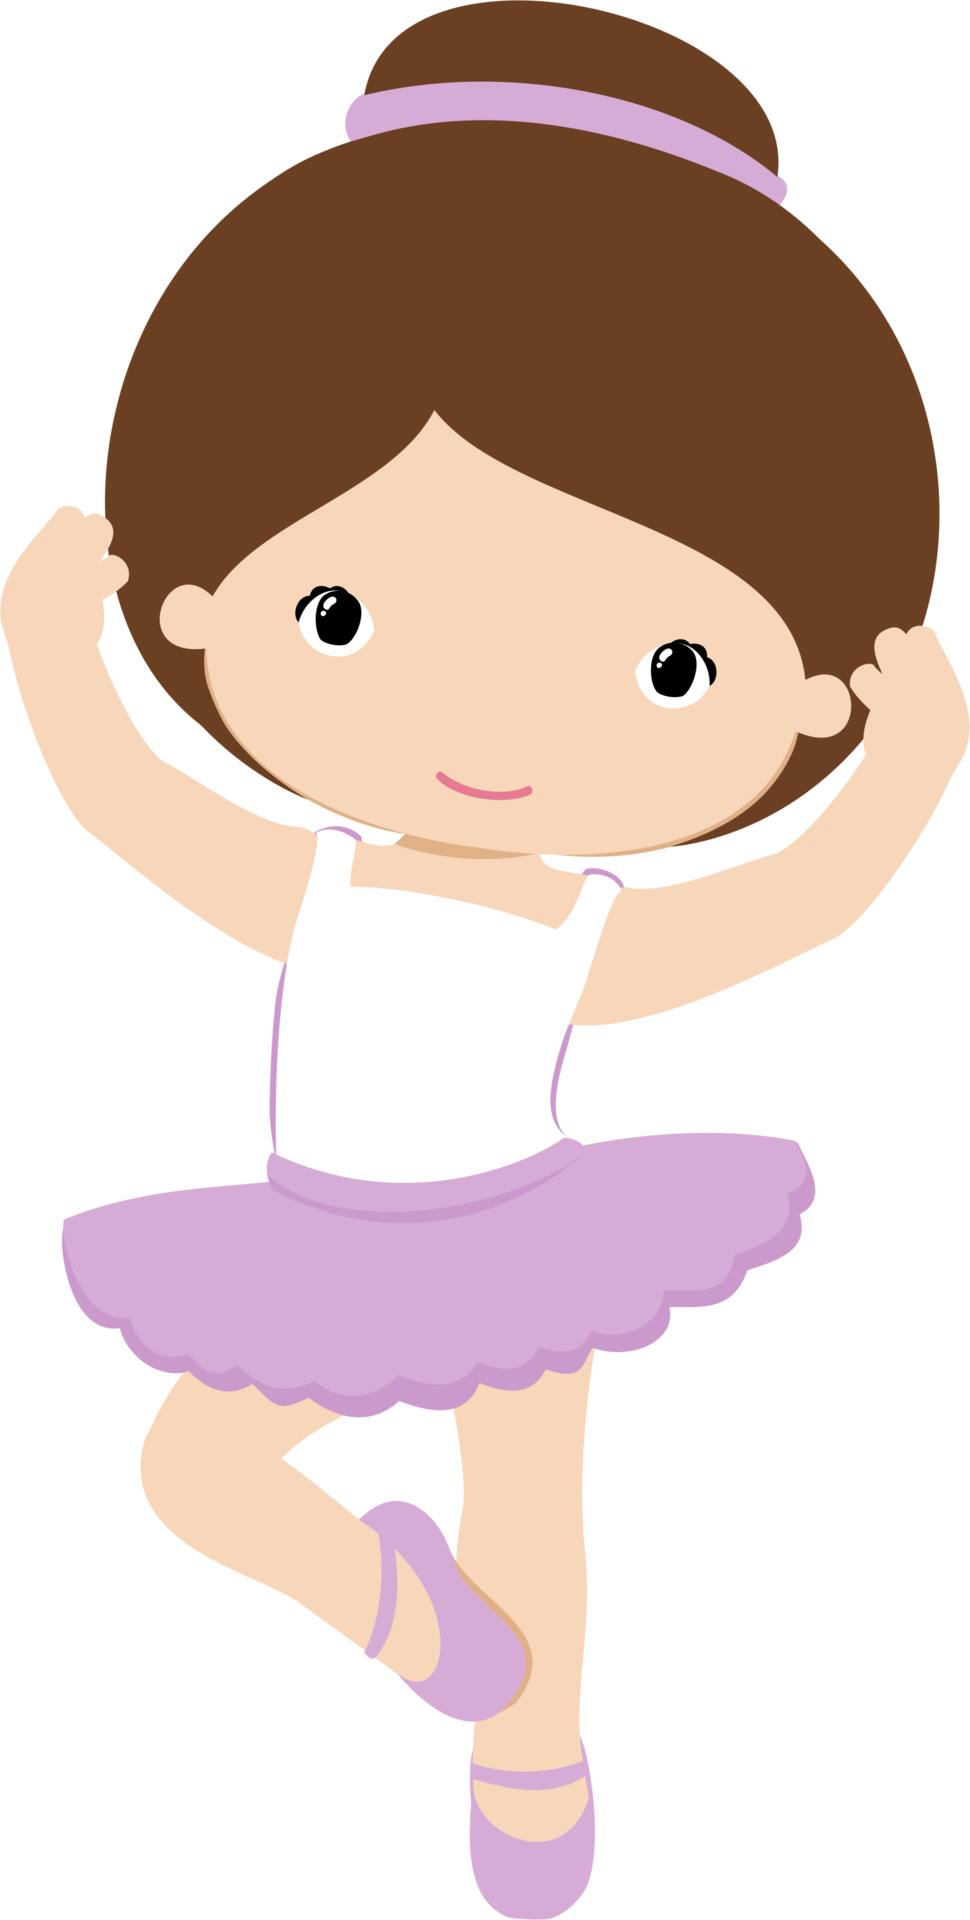 shared exibir todas. Dancer clipart child